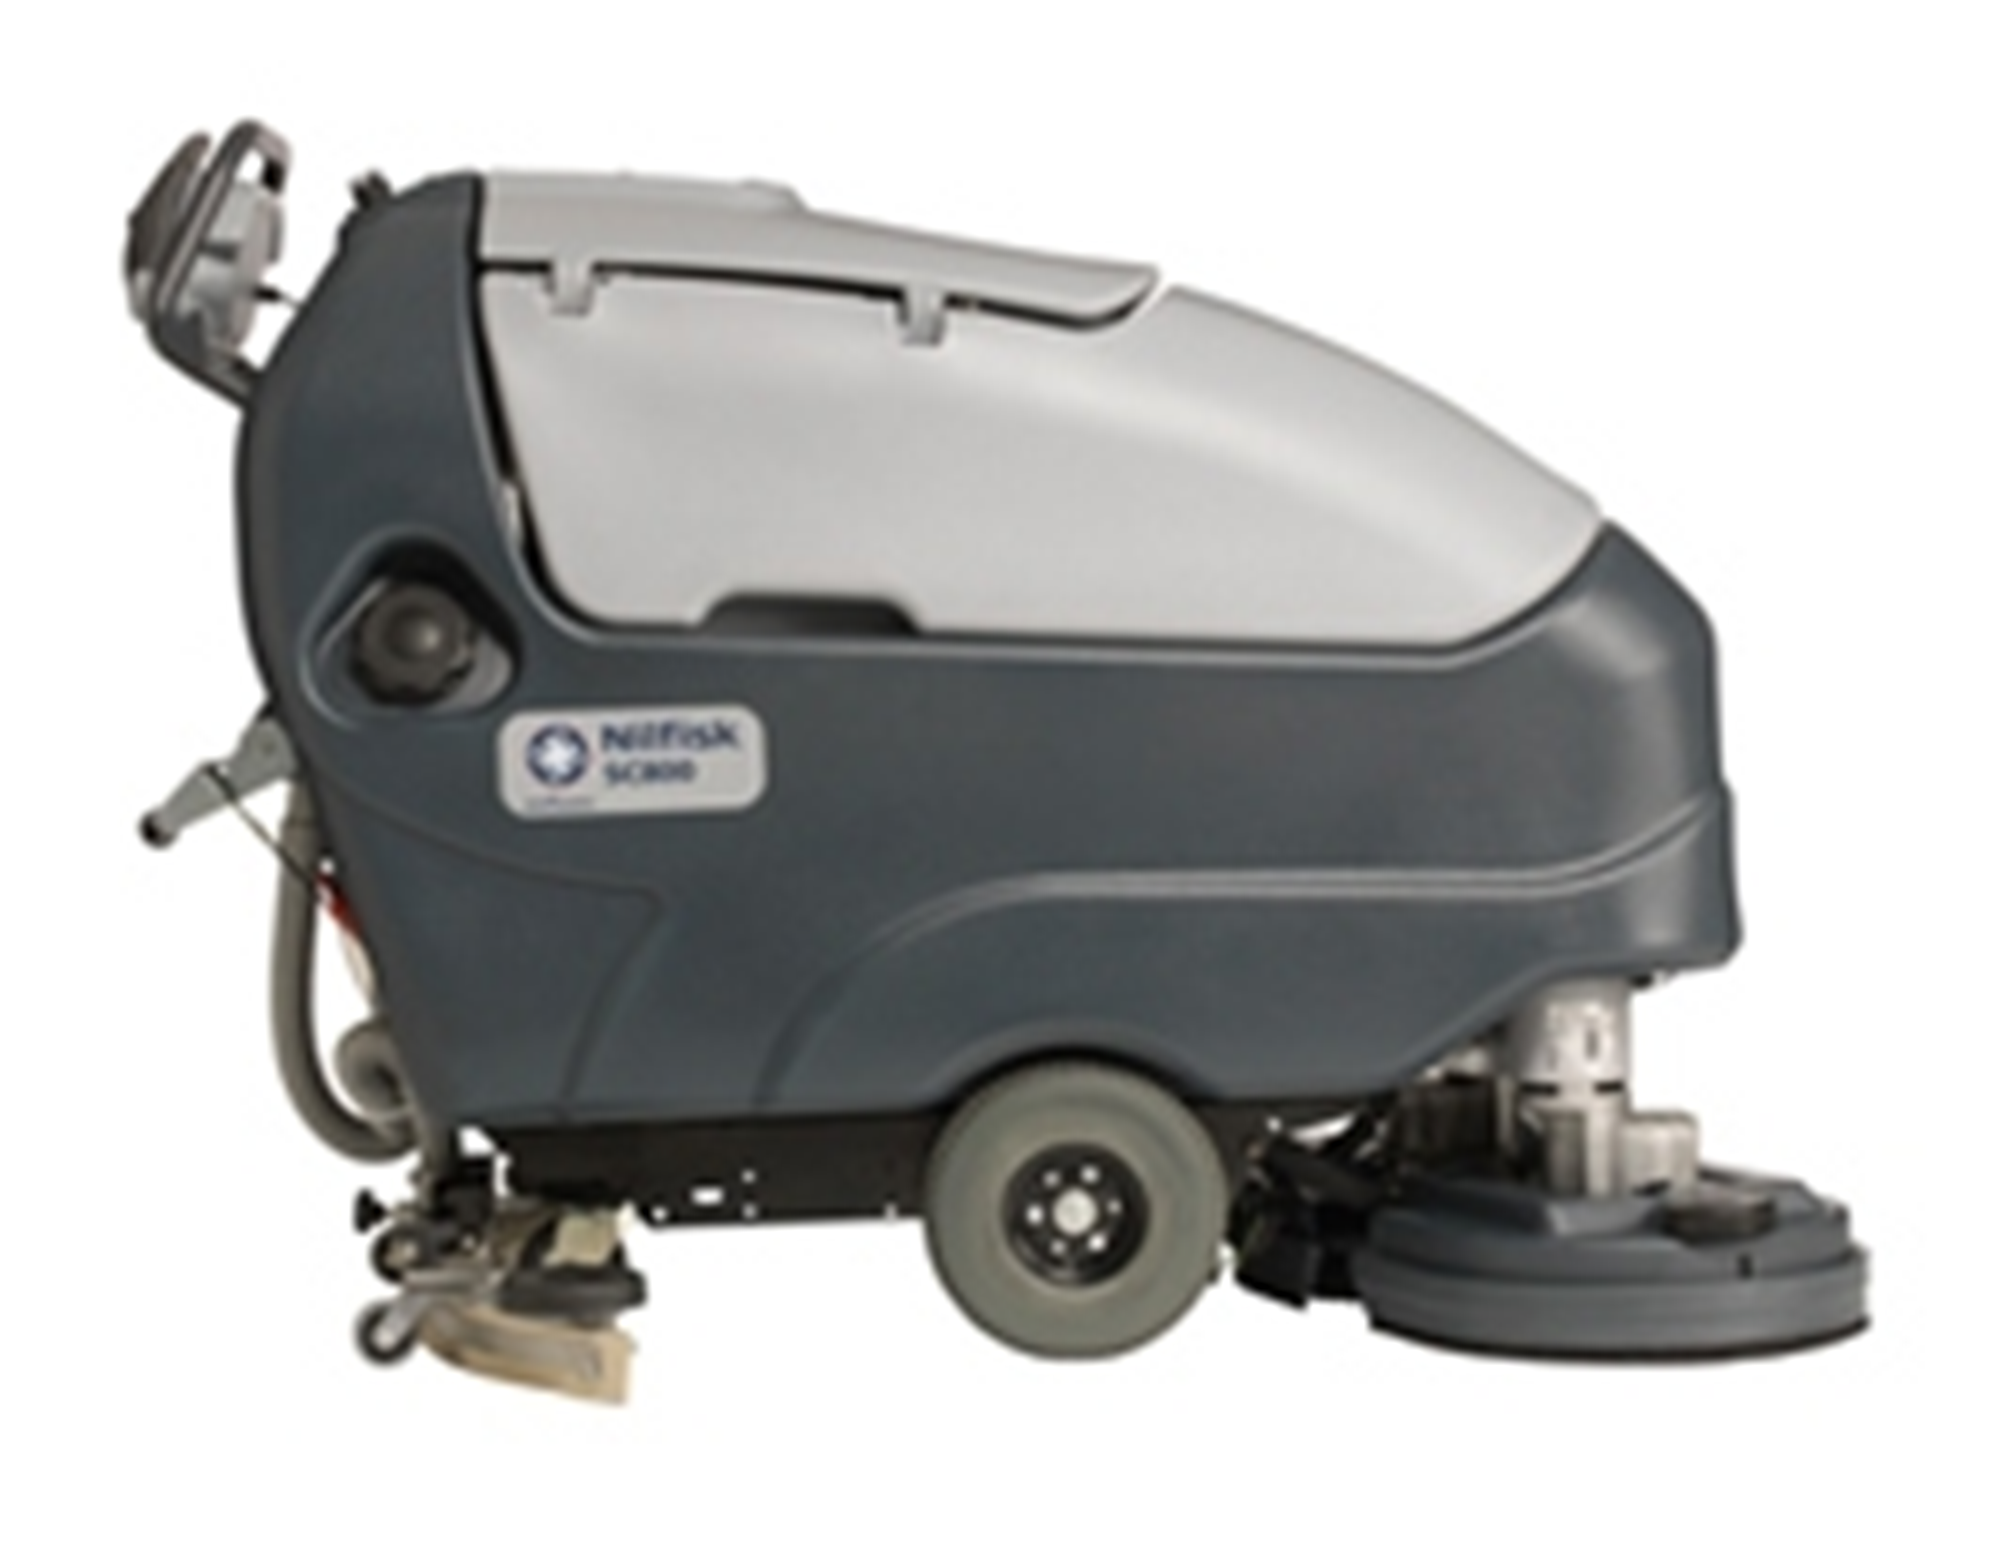 Product, Floor cleaning, Scrubber dryers, Walk-behind scrubber and dryers, Large walk-behind scrubber and dryers, Nilfisk, SC800-86